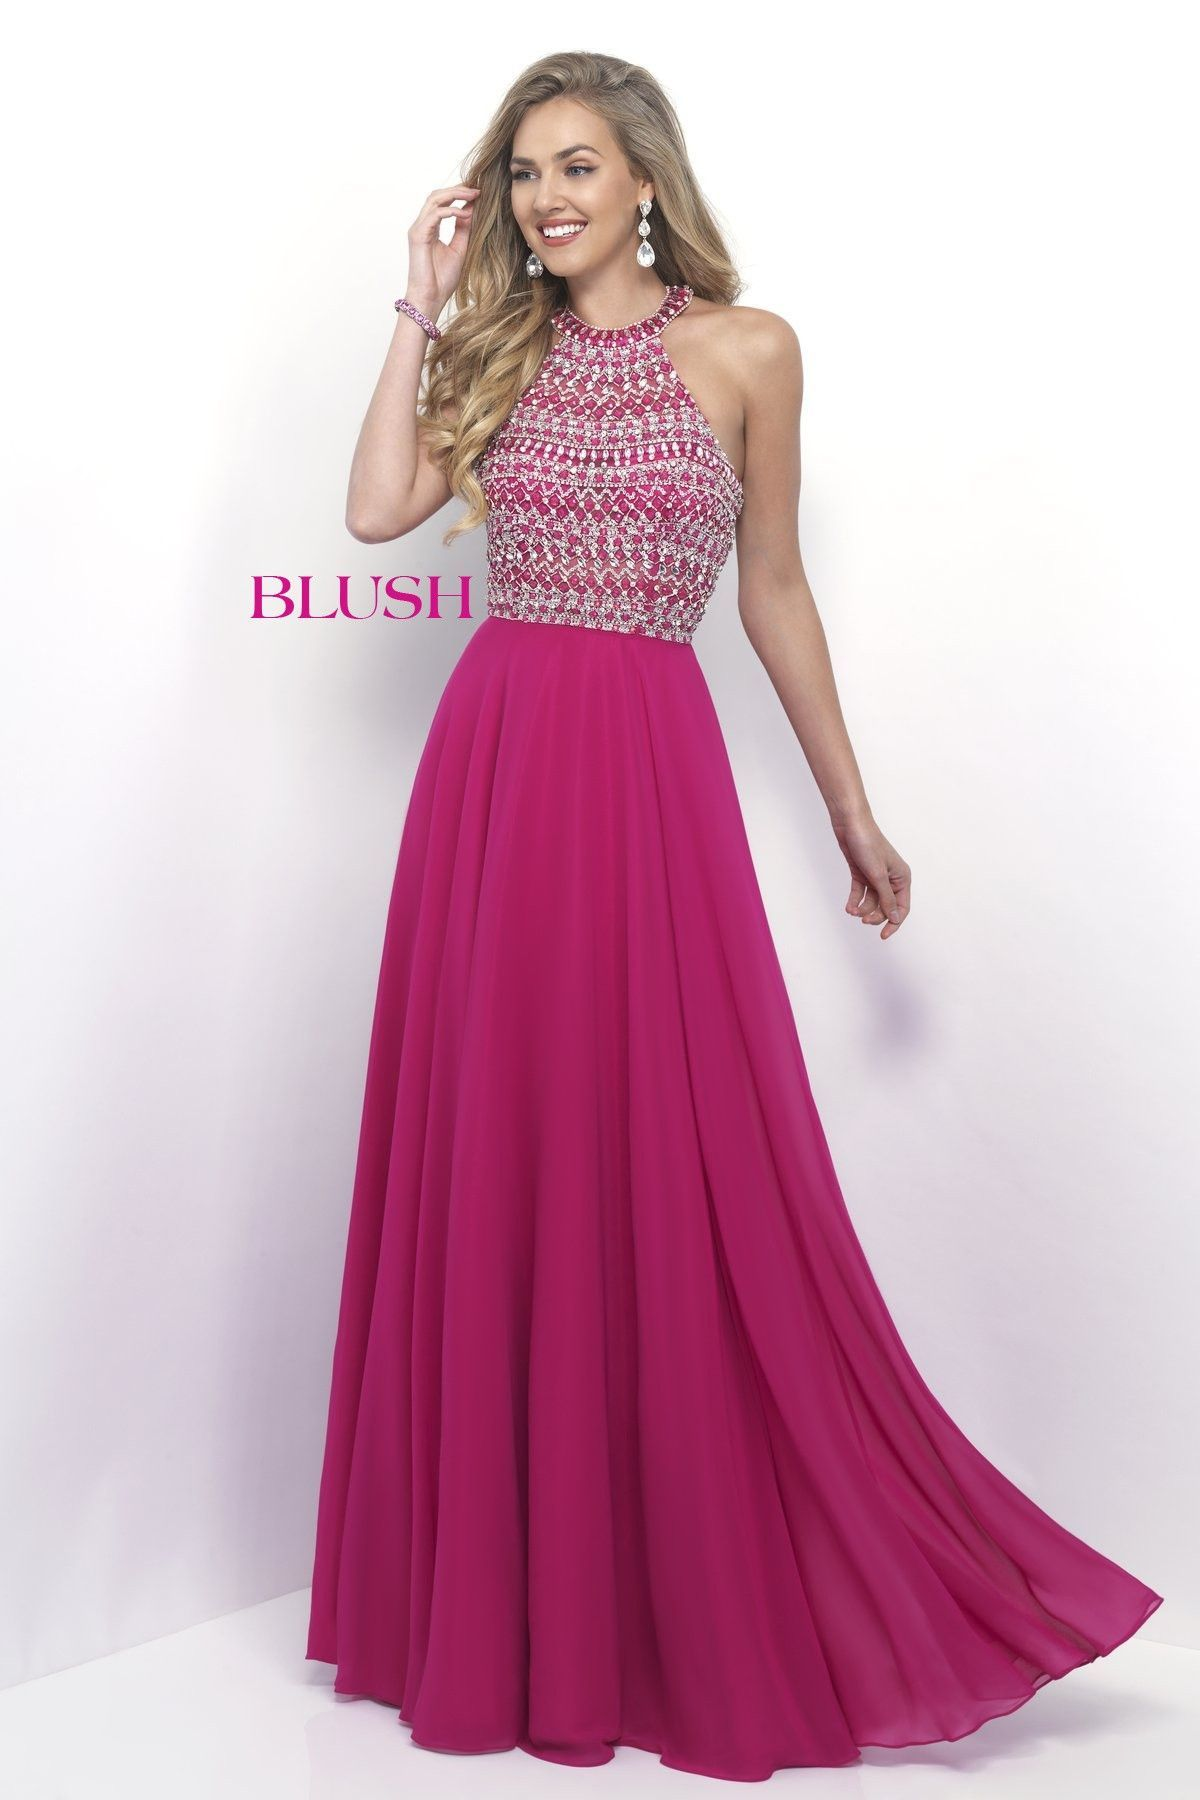 Blush Prom 11251 Lipstick Halter Prom Dress | prom | Pinterest ...